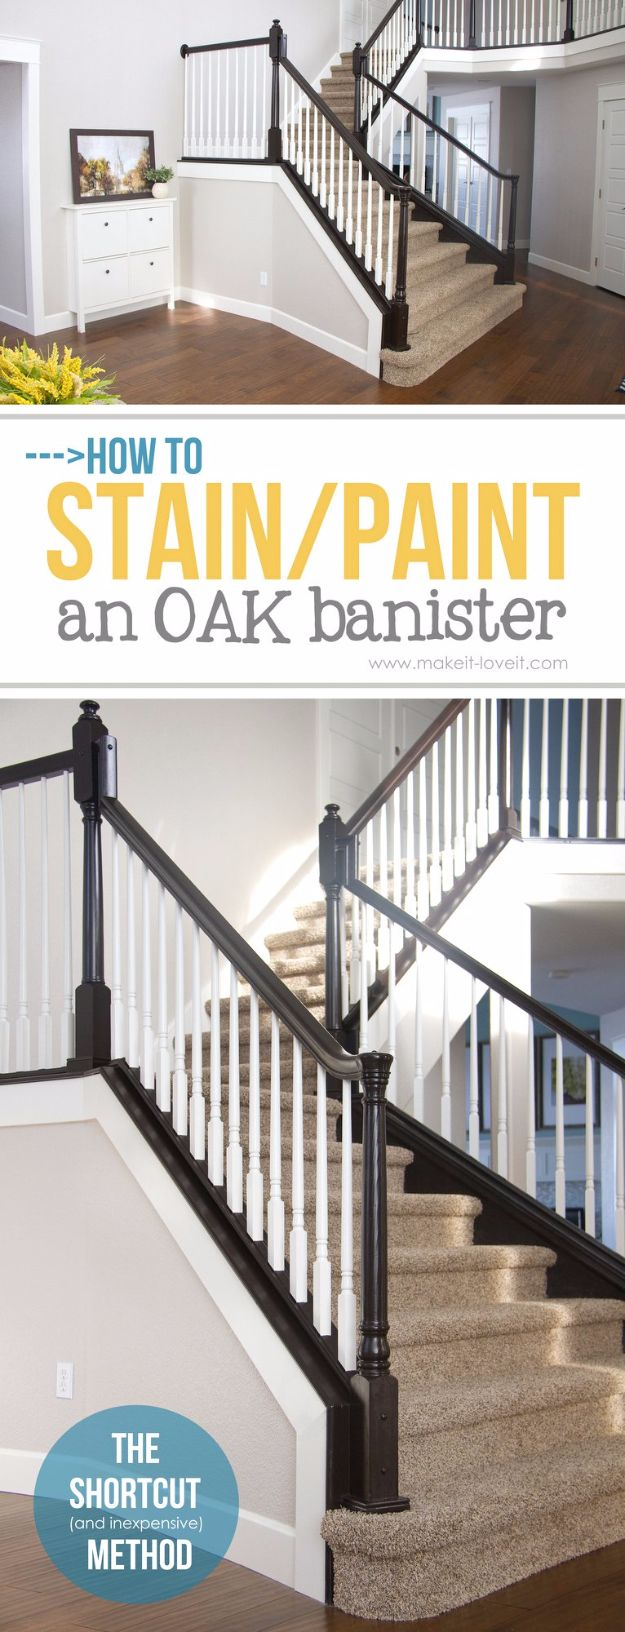 DIY Home Improvement Projects On A Budget - Paint an Oak Banister - Cool Home Improvement Hacks, Easy and Cheap Do It Yourself Tutorials for Updating and Renovating Your House - Home Decor Tips and Tricks, Remodeling and Decorating Hacks - DIY Projects